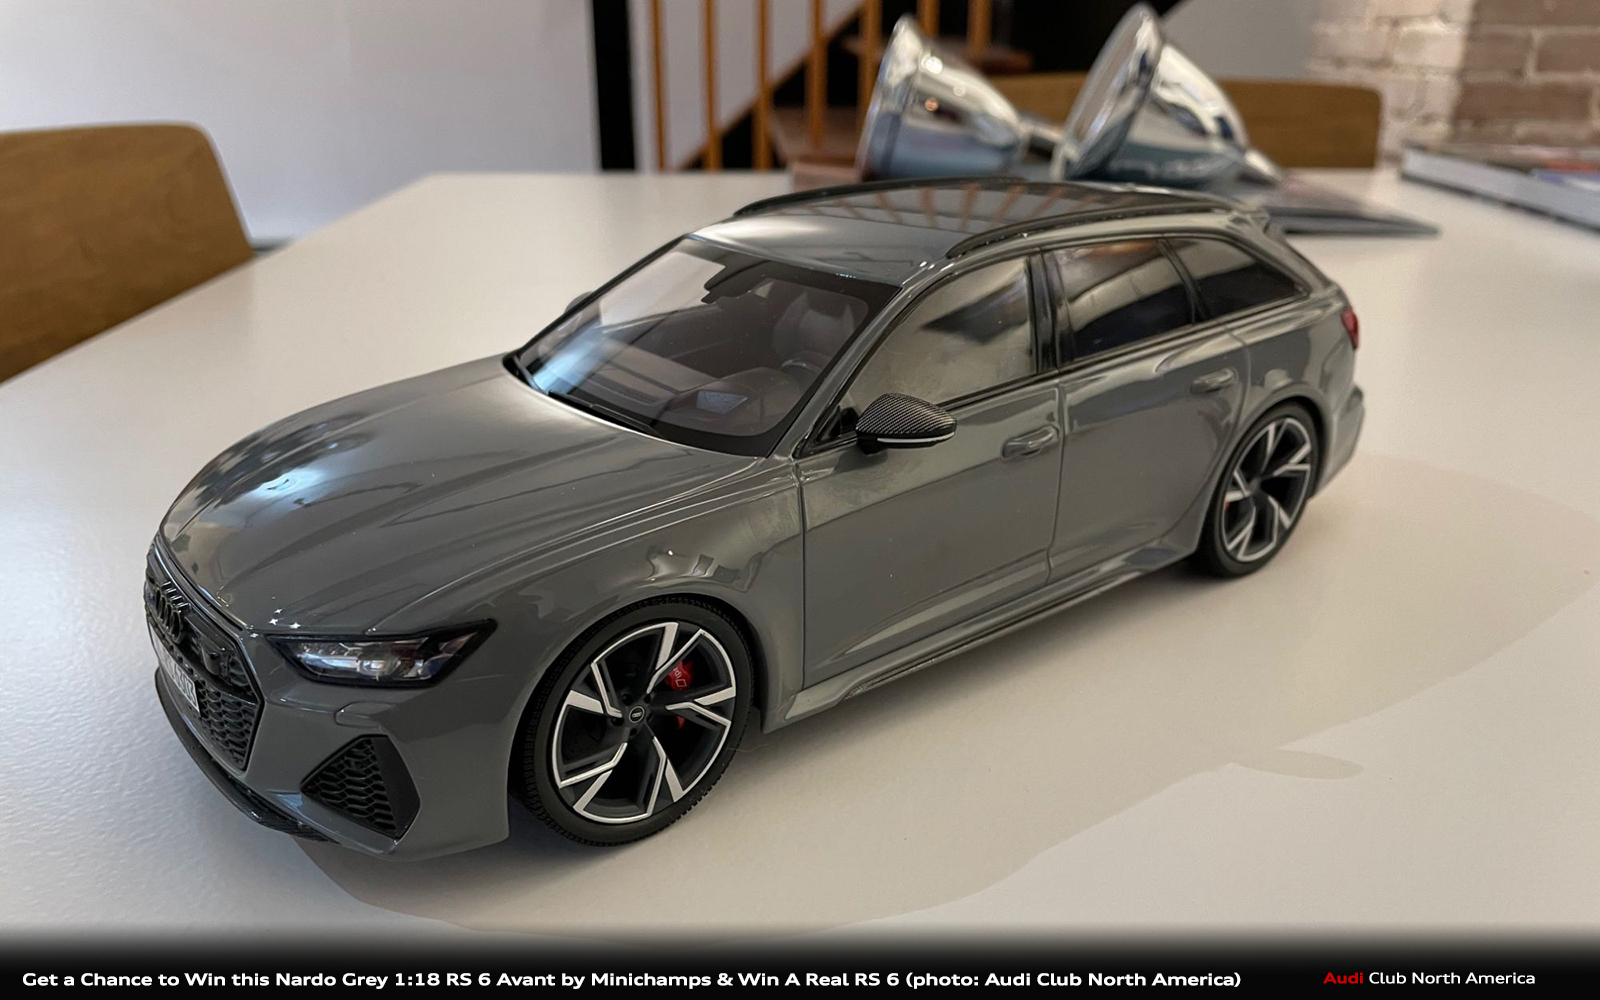 Get a Chance to Win This Nardo Grey 1:18 Scale Audi RS 6 Avant and a Real RS 6 Avant